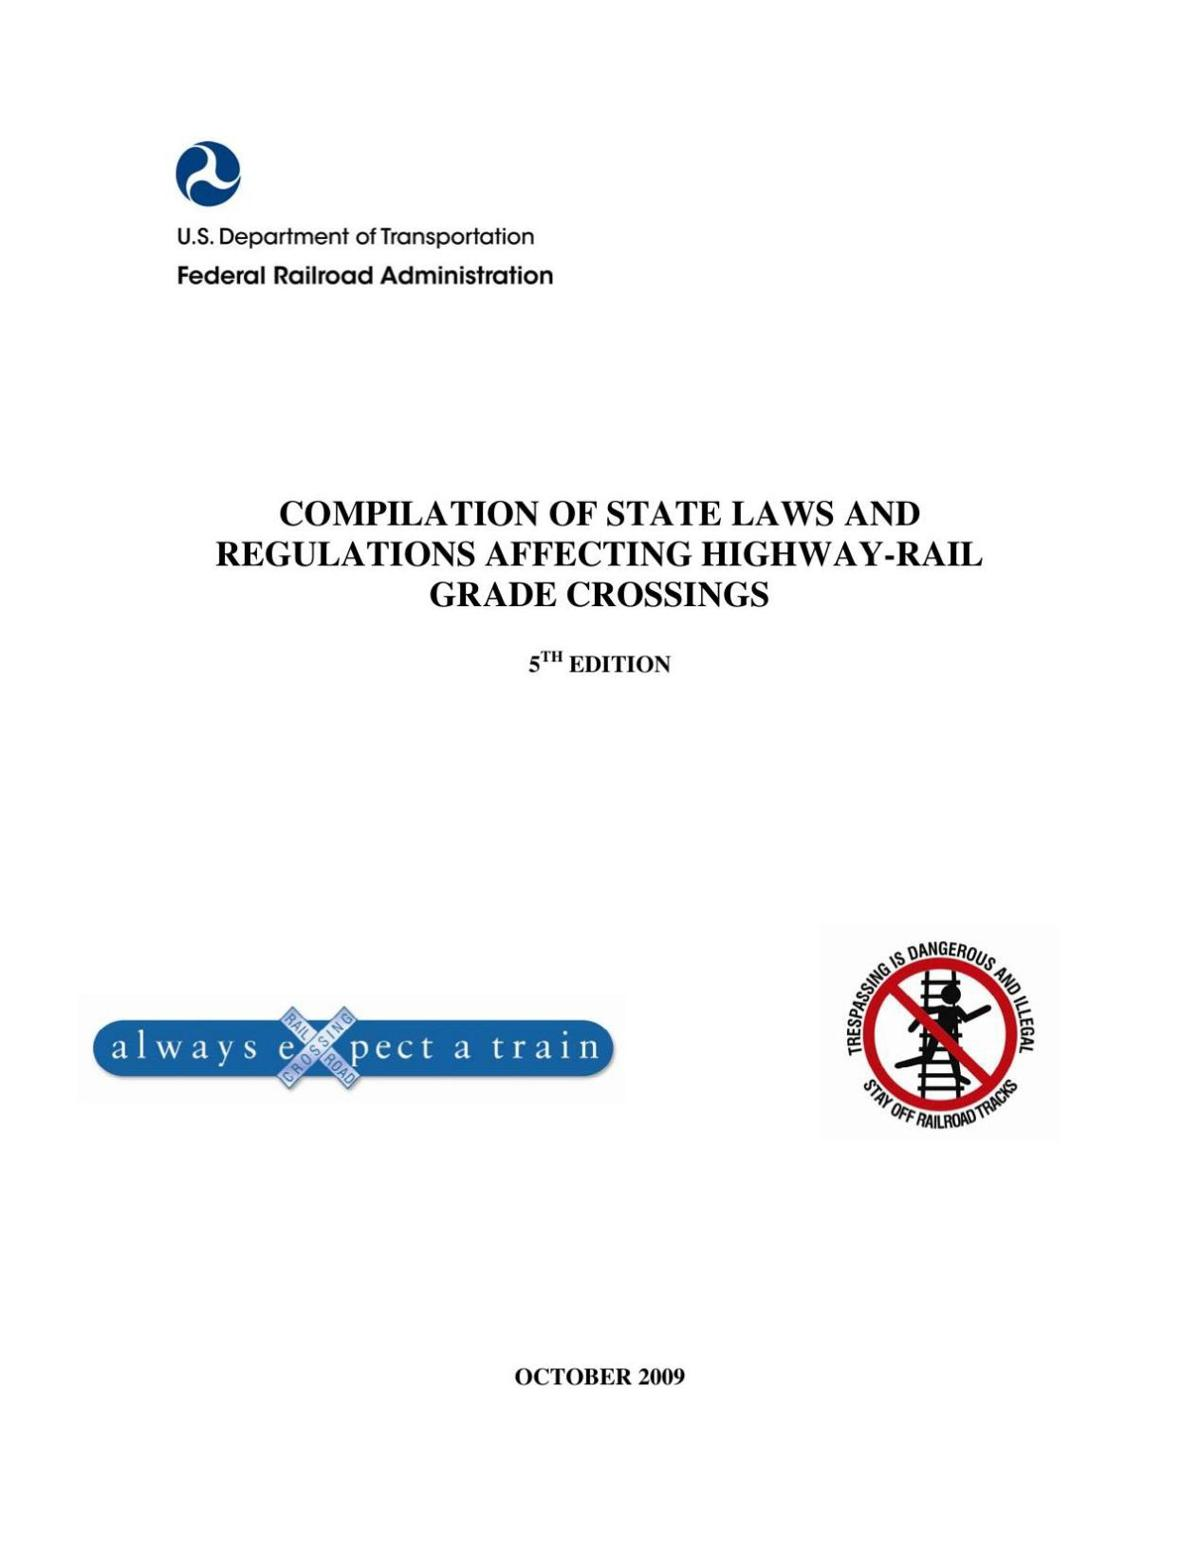 Compilation of State Laws and Regulations Affecting Highway-Rail Grade Crossings